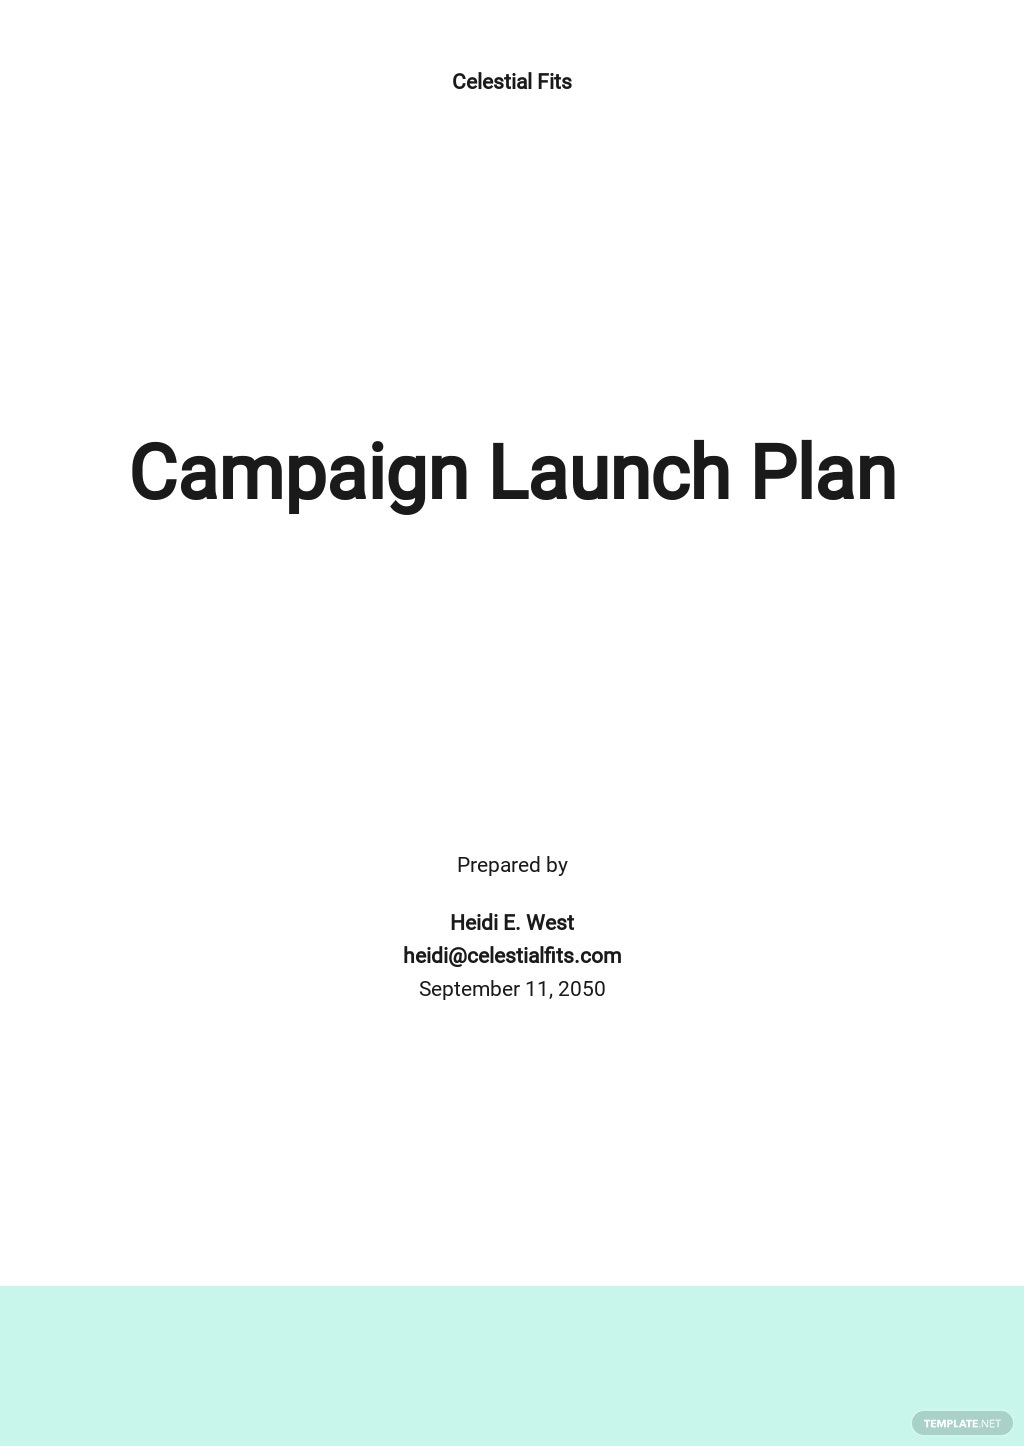 Campaign Launch Plan Template.jpe